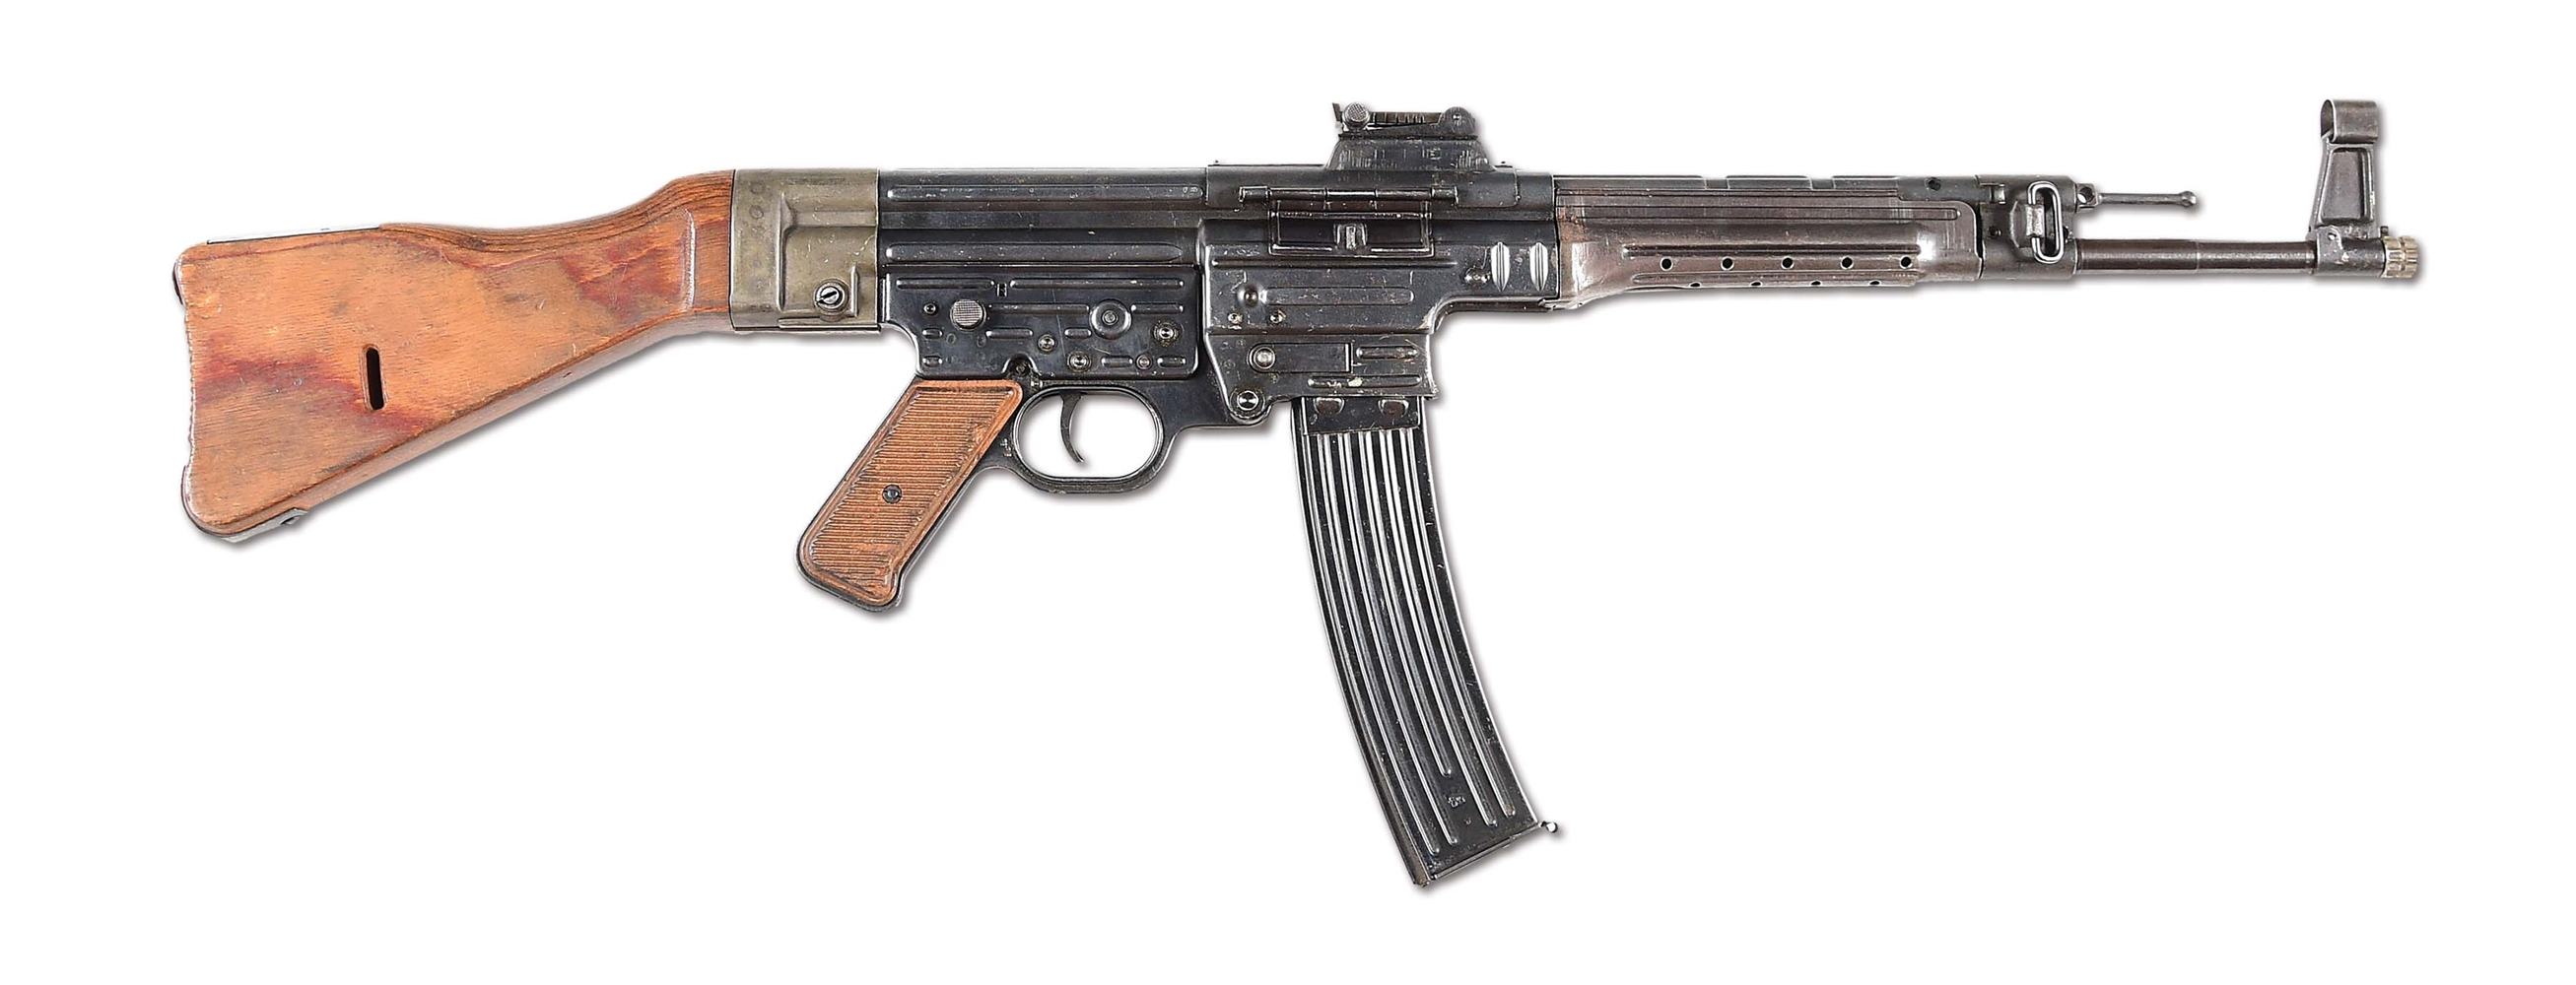 (N) ATTRACTIVE 1945 DATED C.G. HAENEL MANUFACTURED WORLD WAR II GERMAN MP-44 MACHINE GUN (DEACTIVATED) (CURIO AND RELIC).